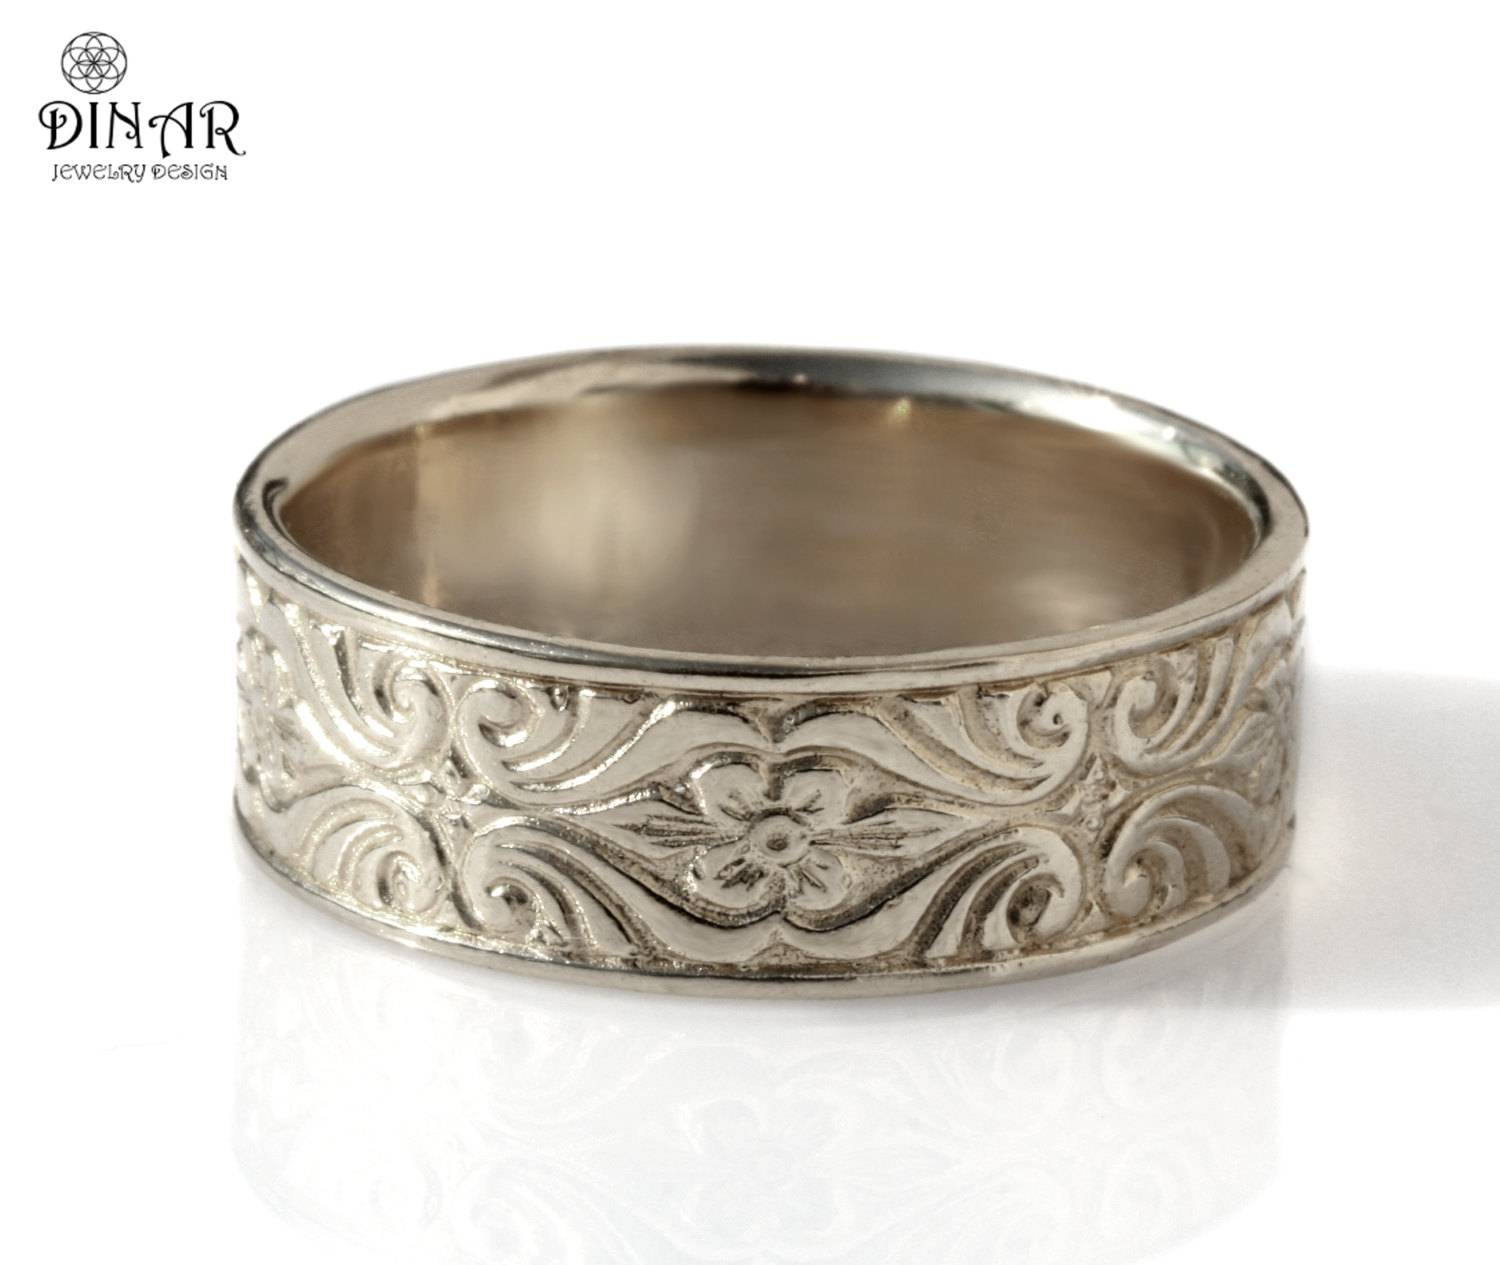 14K White Gold Wedding Band Engraved Scrolls Leaf Men In Most Recent Thick White Gold Wedding Bands (View 2 of 15)